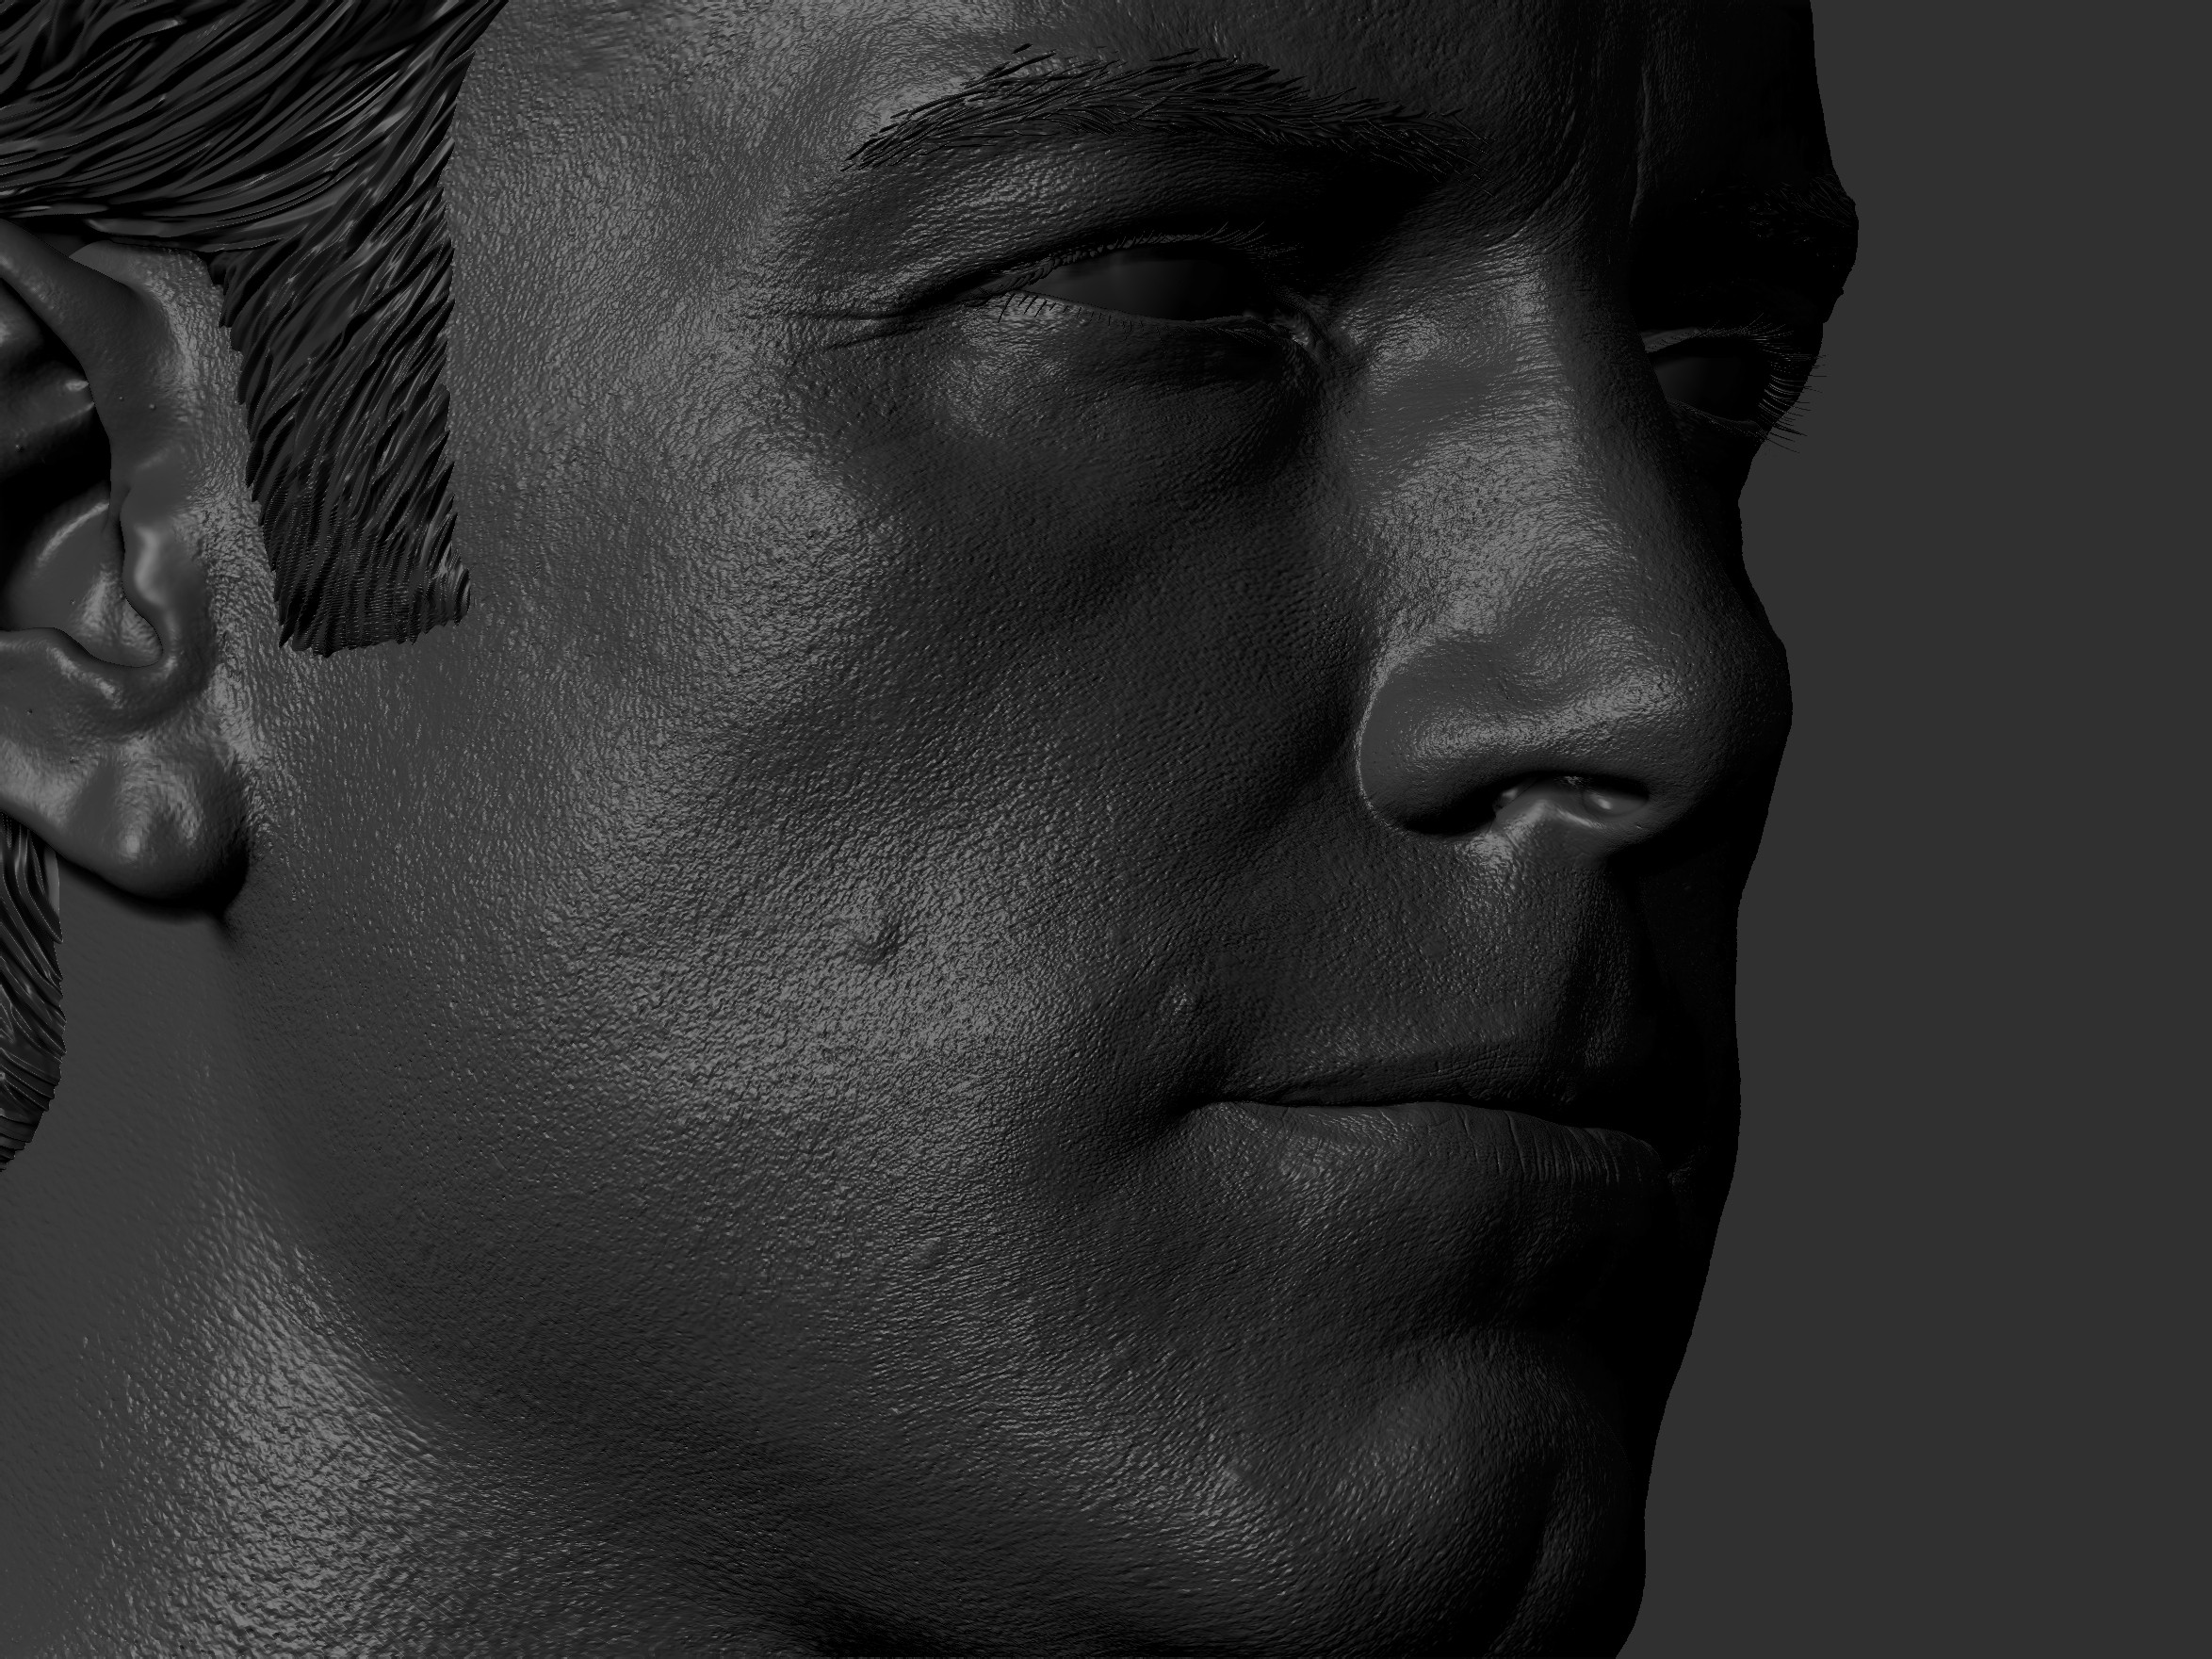 used Texturing XYZ for skin pores